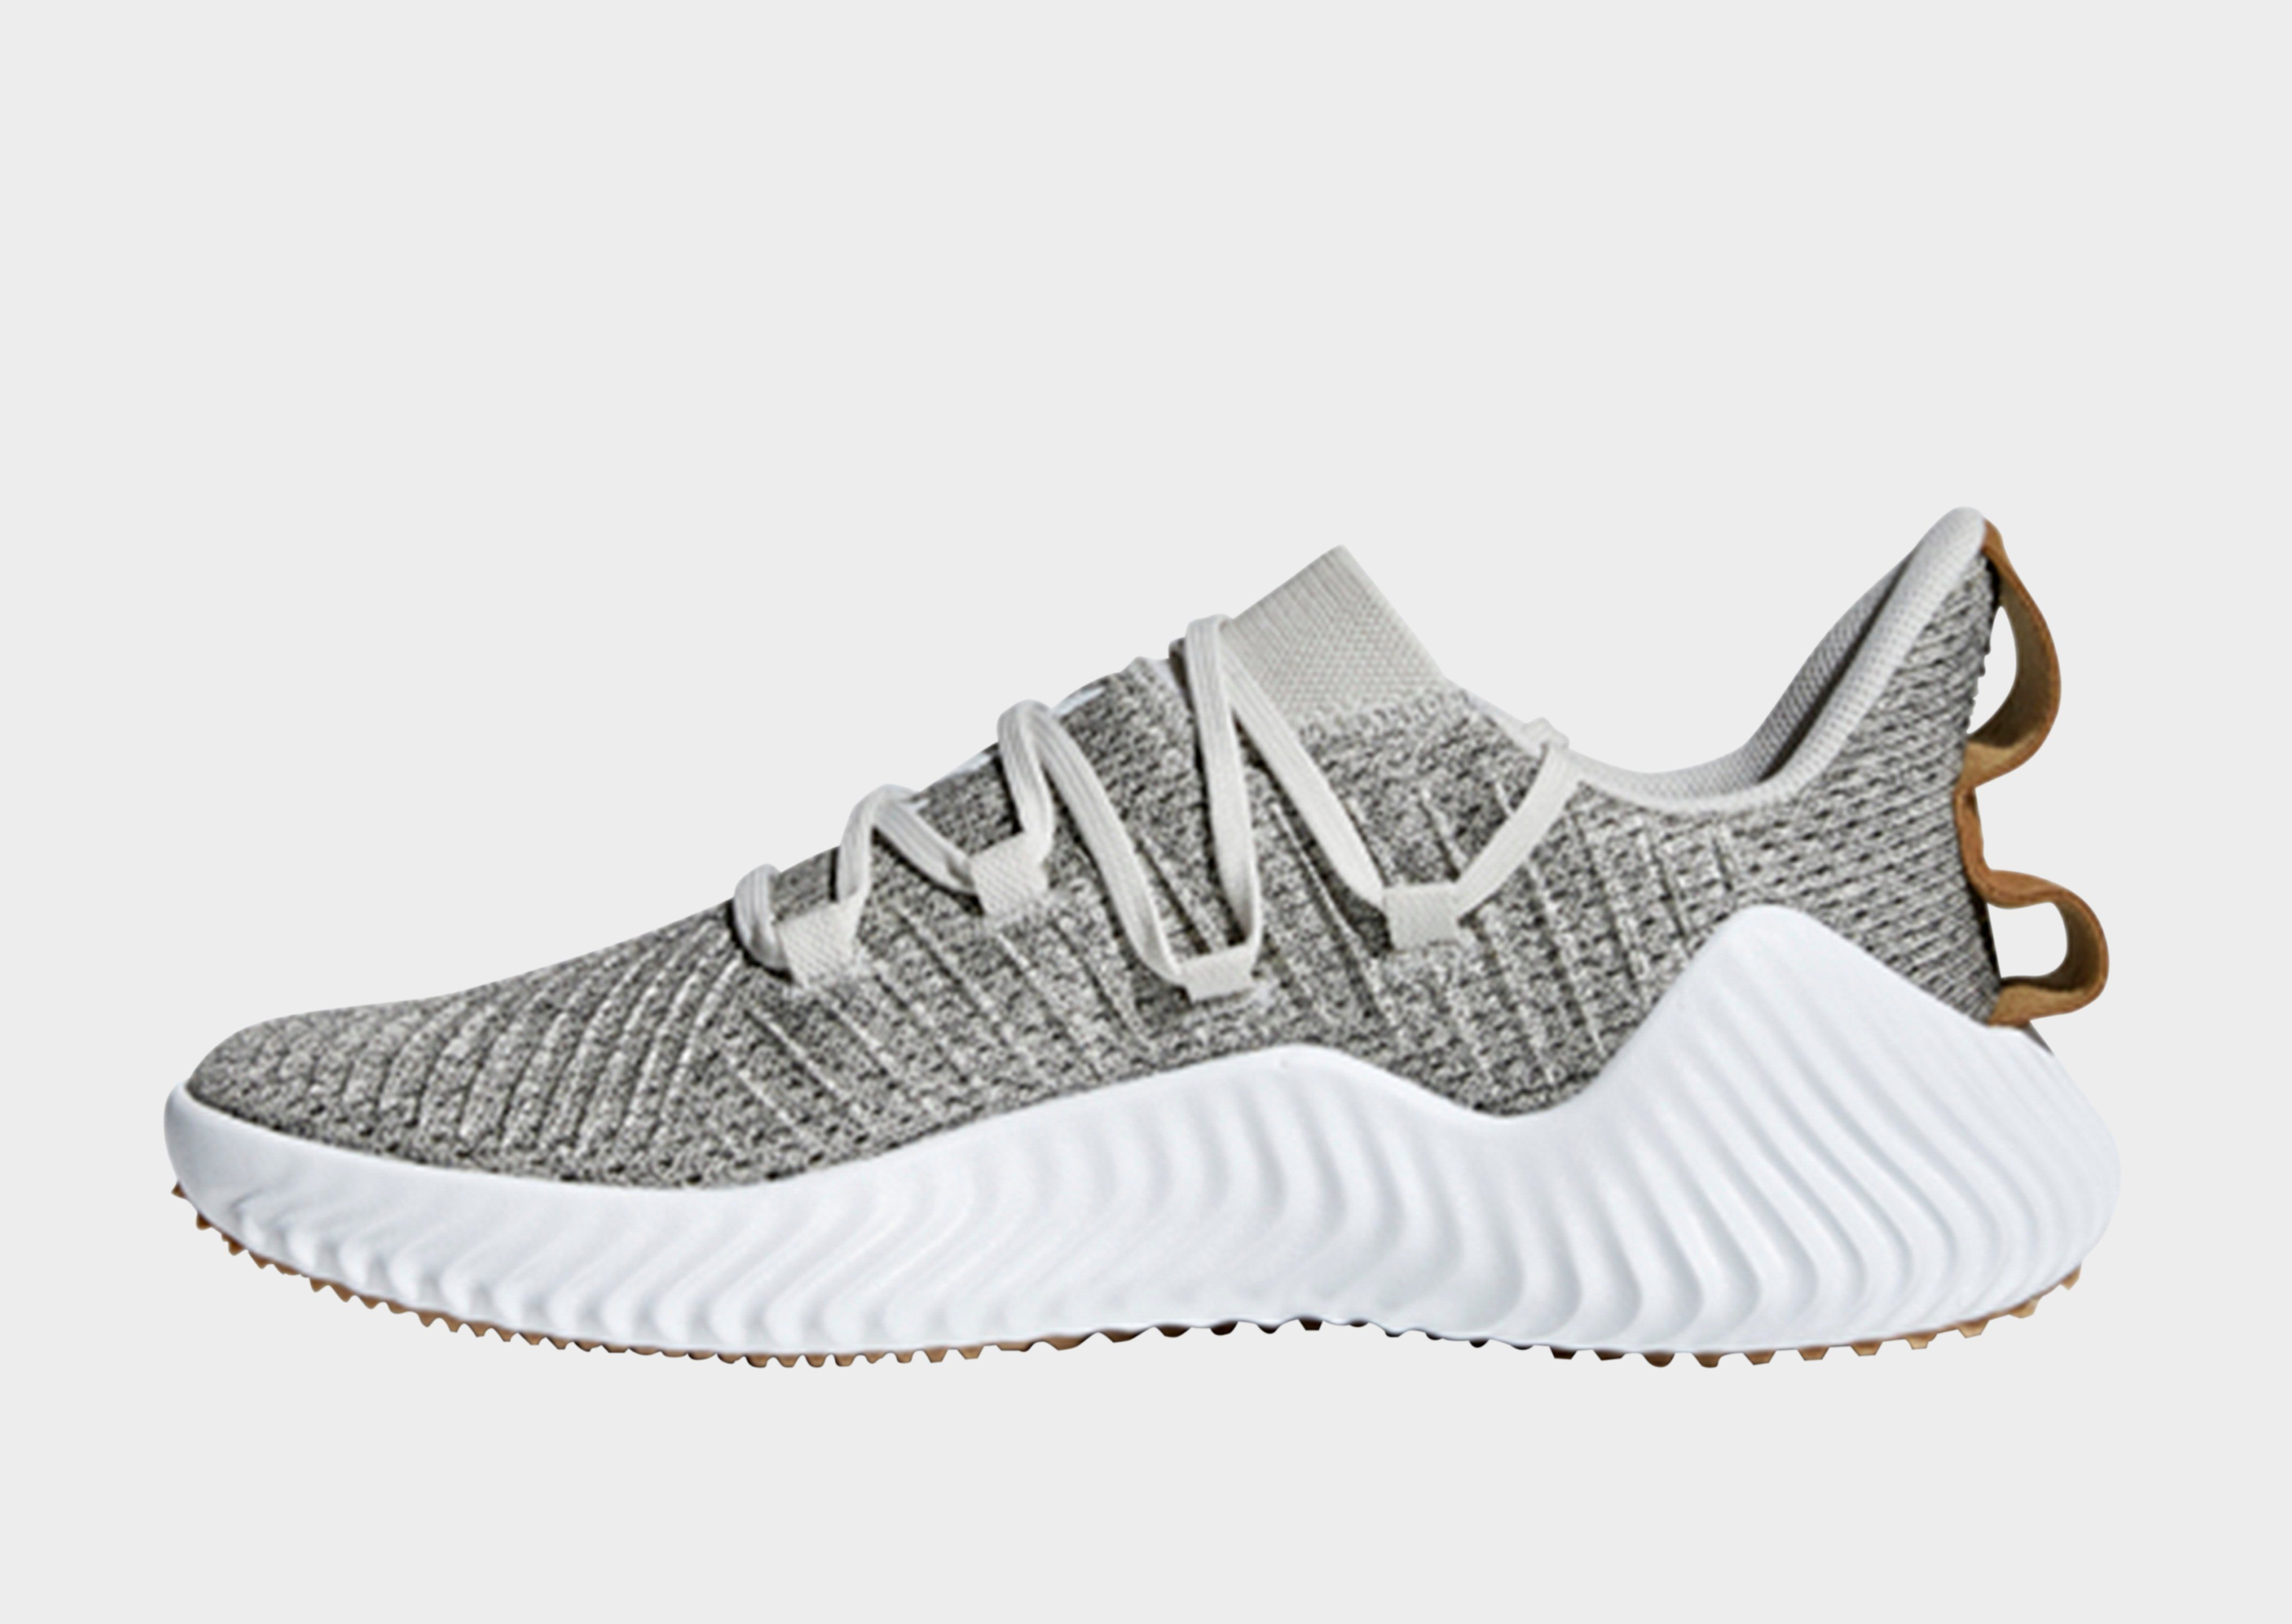 6b21f8769 ADIDAS Alphabounce Trainer Shoes